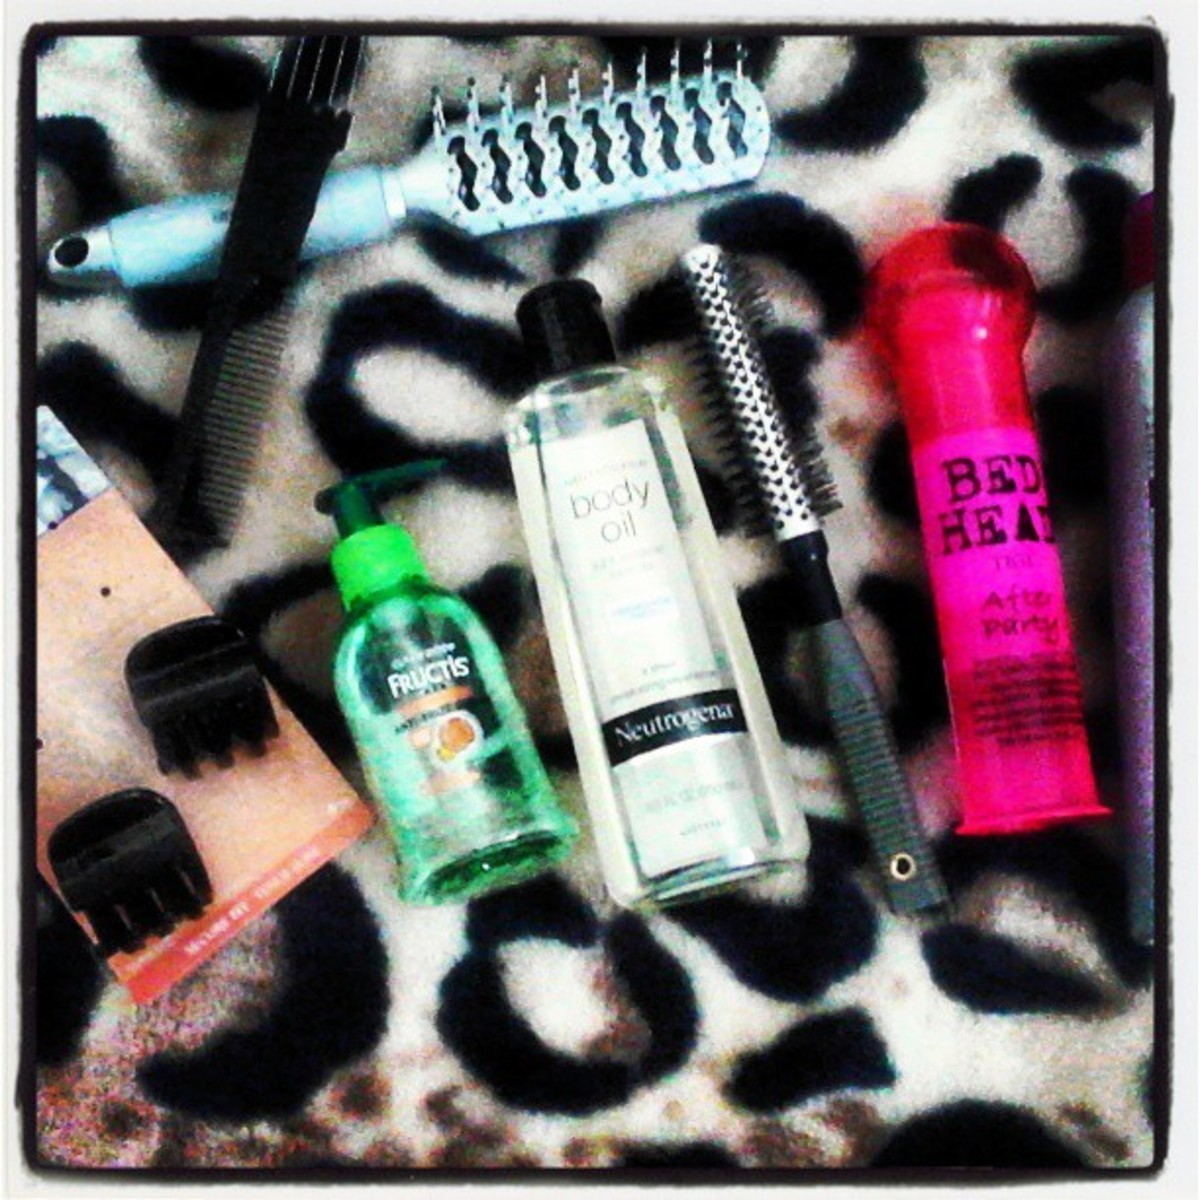 These are a few of the products I use on my hair daily.